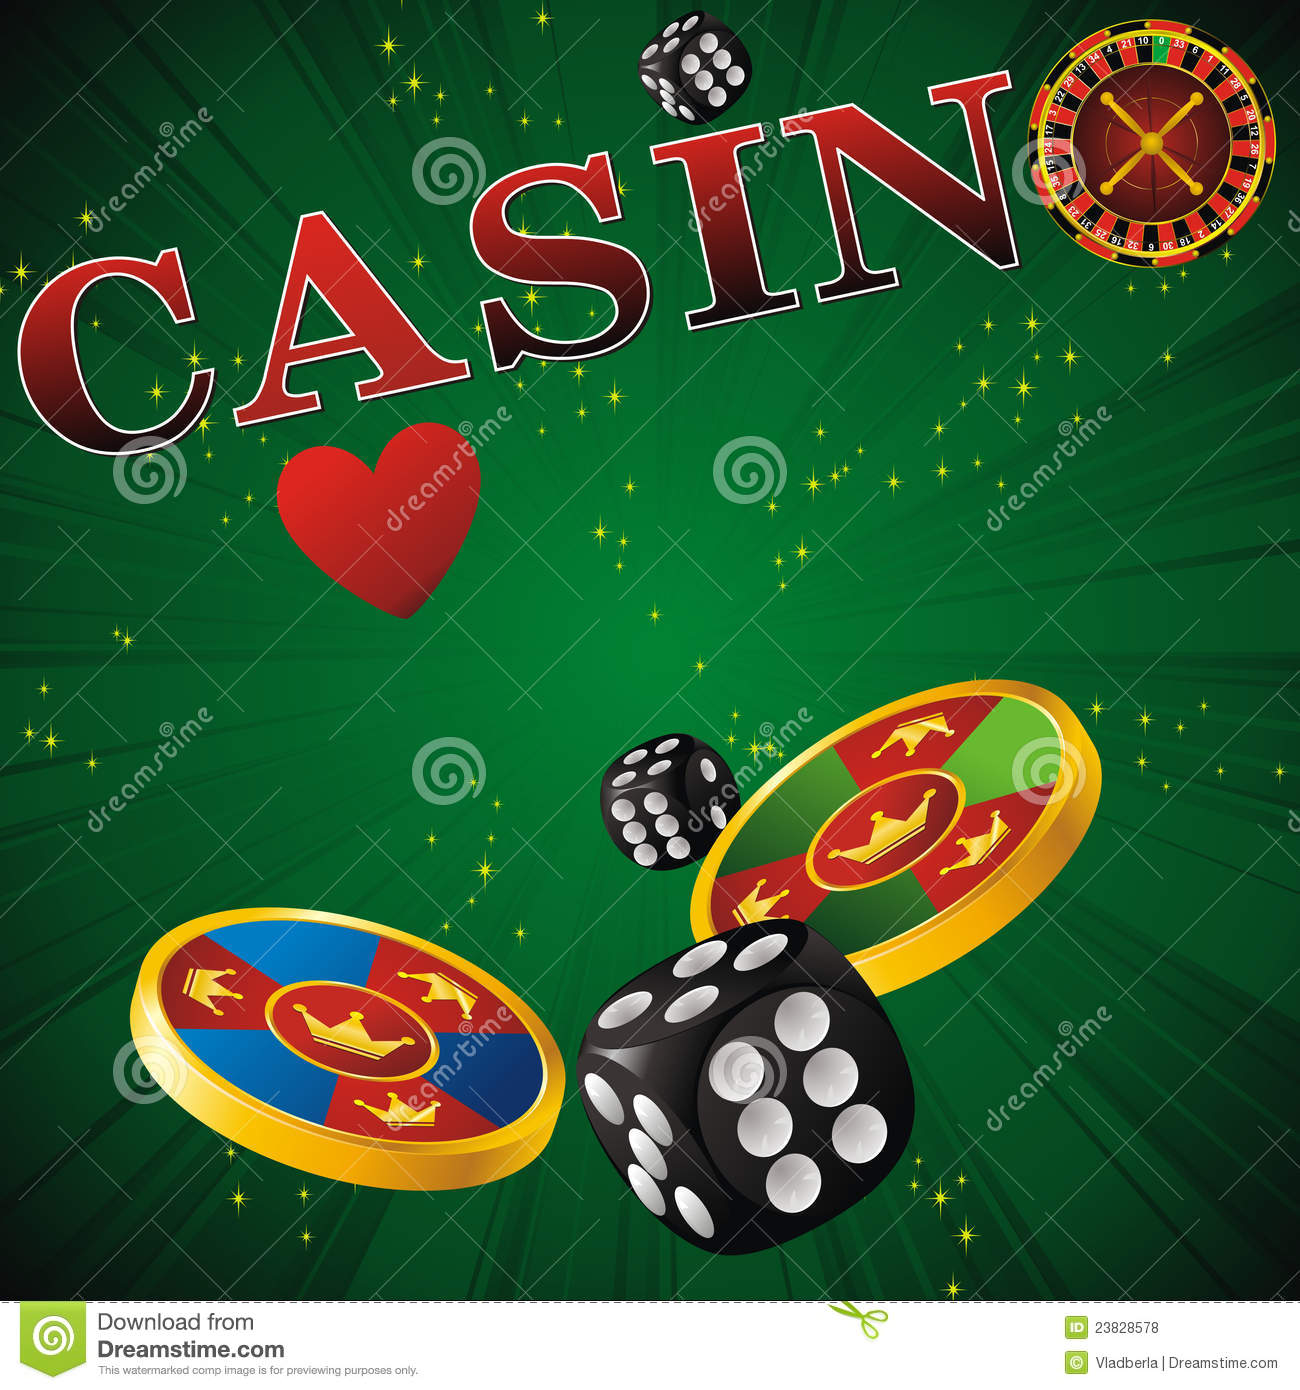 casino games online free piraten symbole